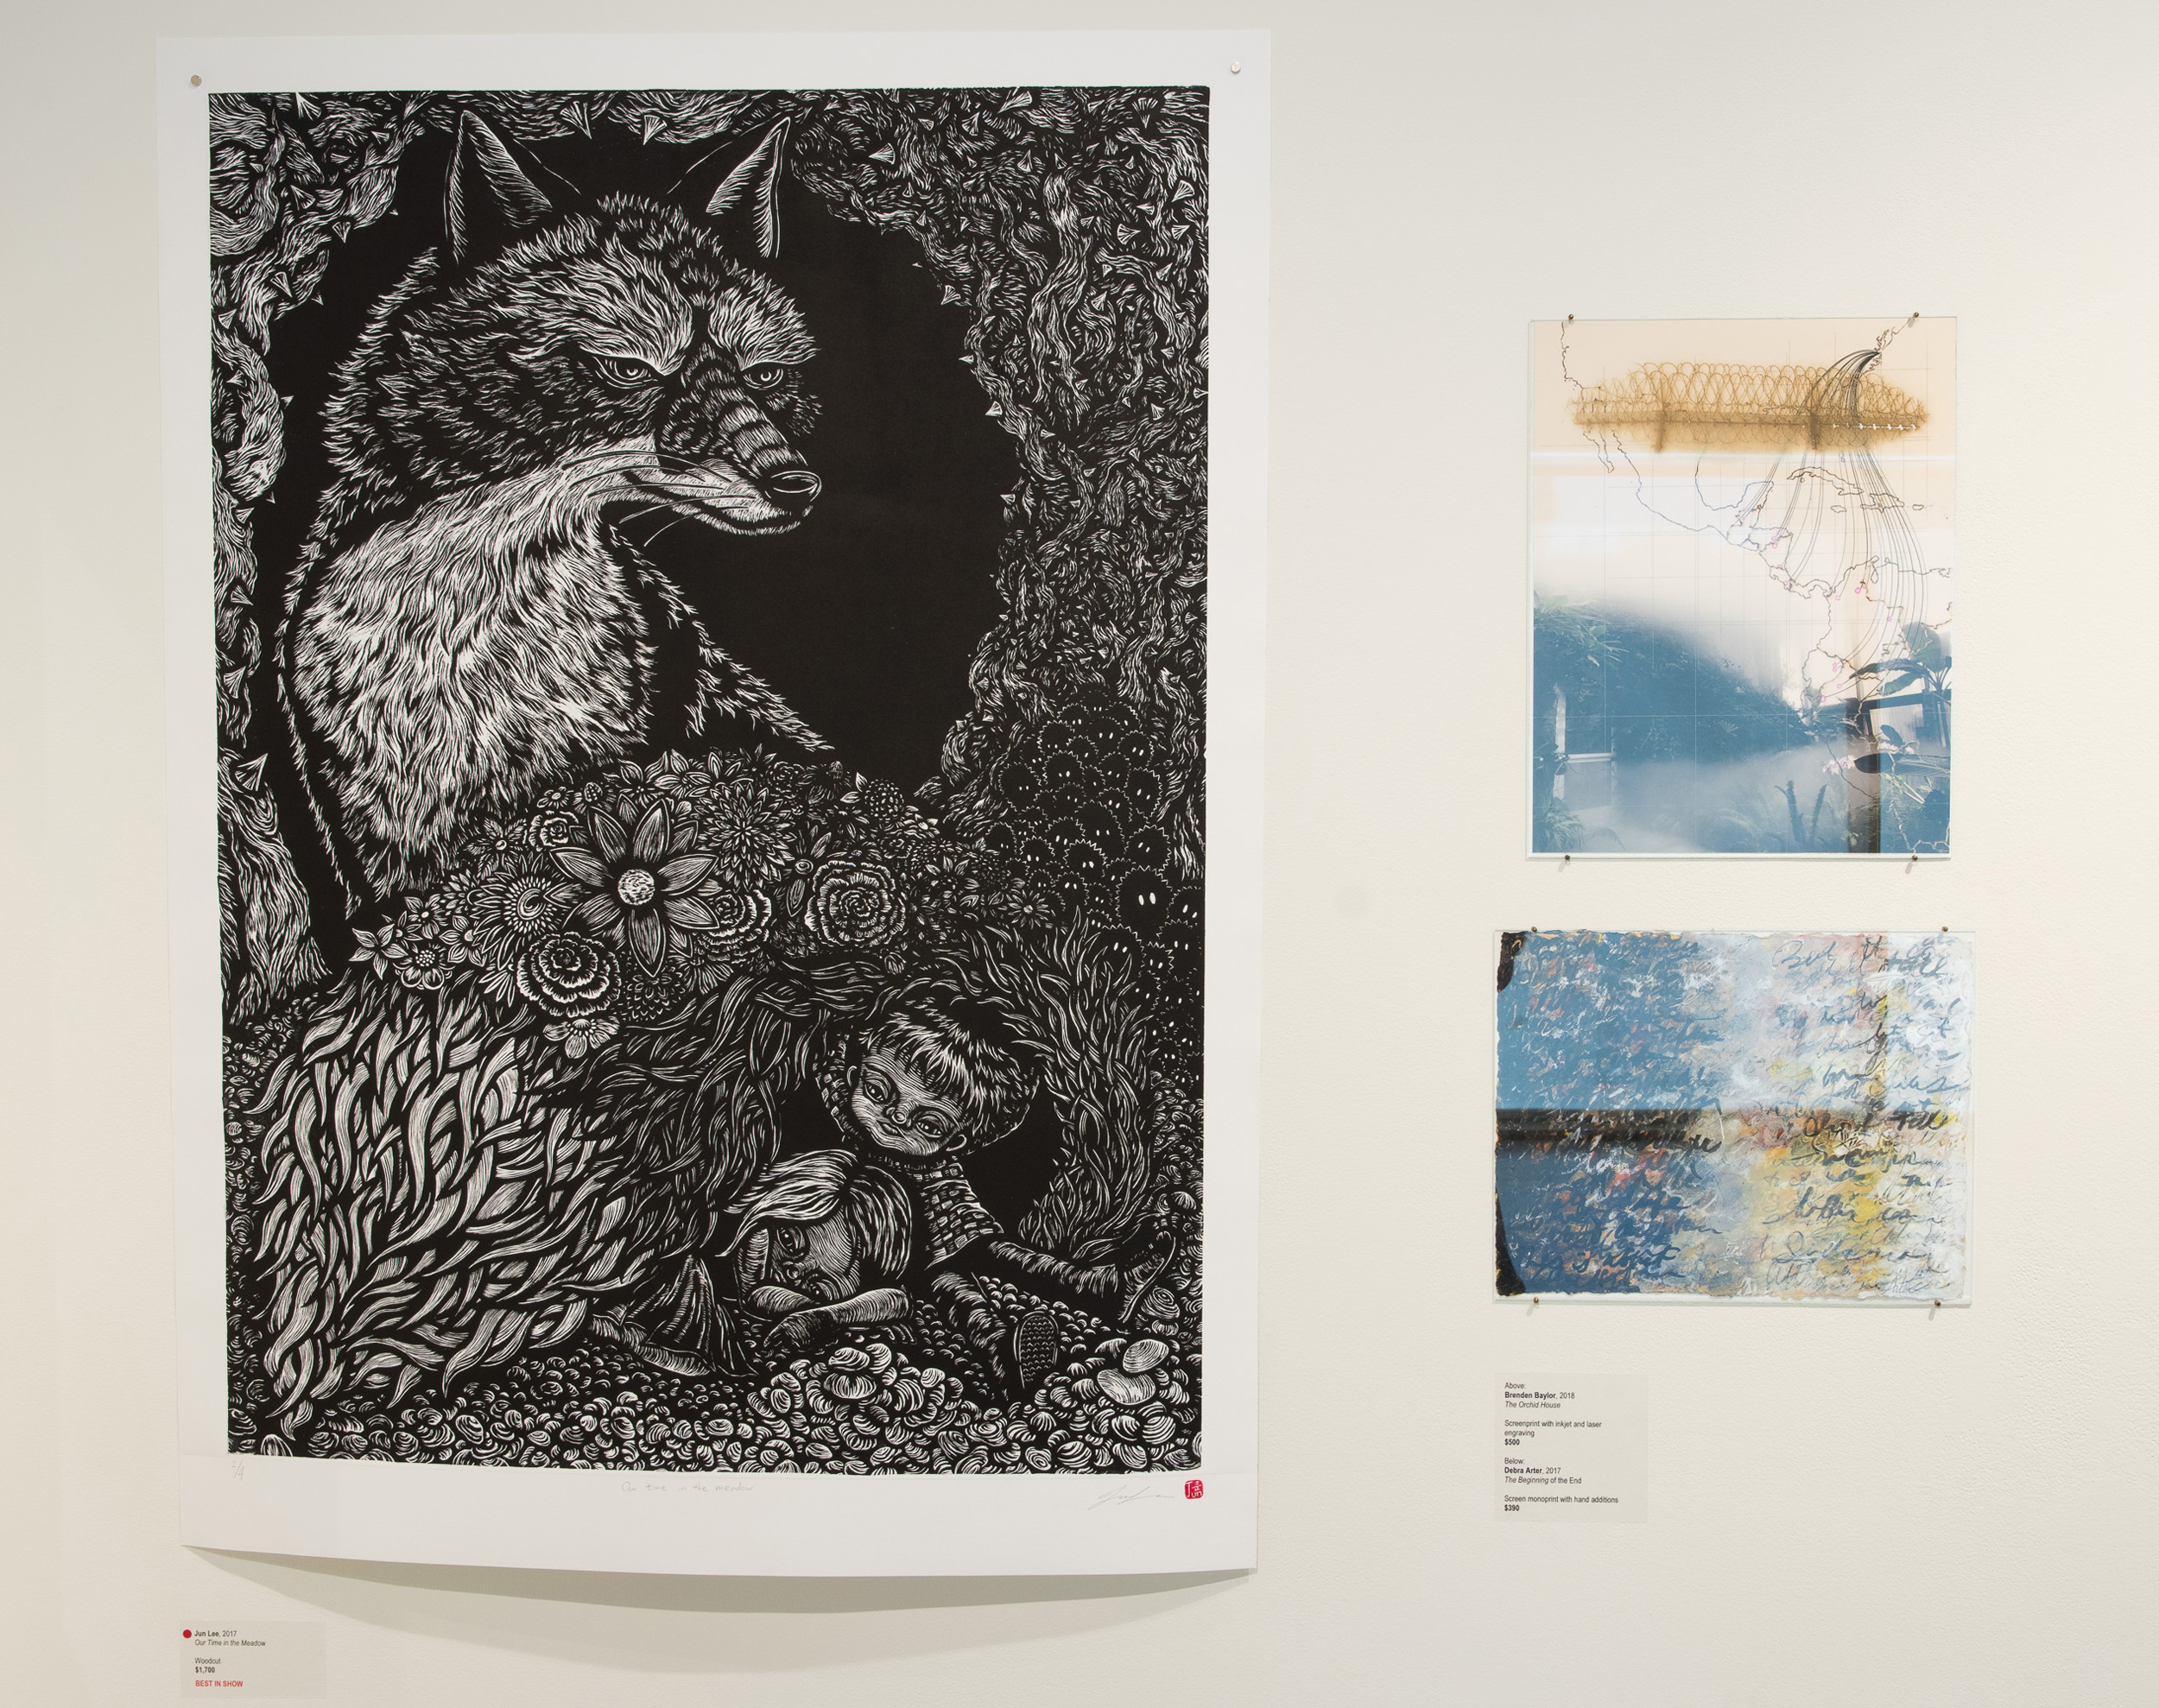 Highpoint PrintmakingStand Out Prints Exhibit180927a0306.JPG